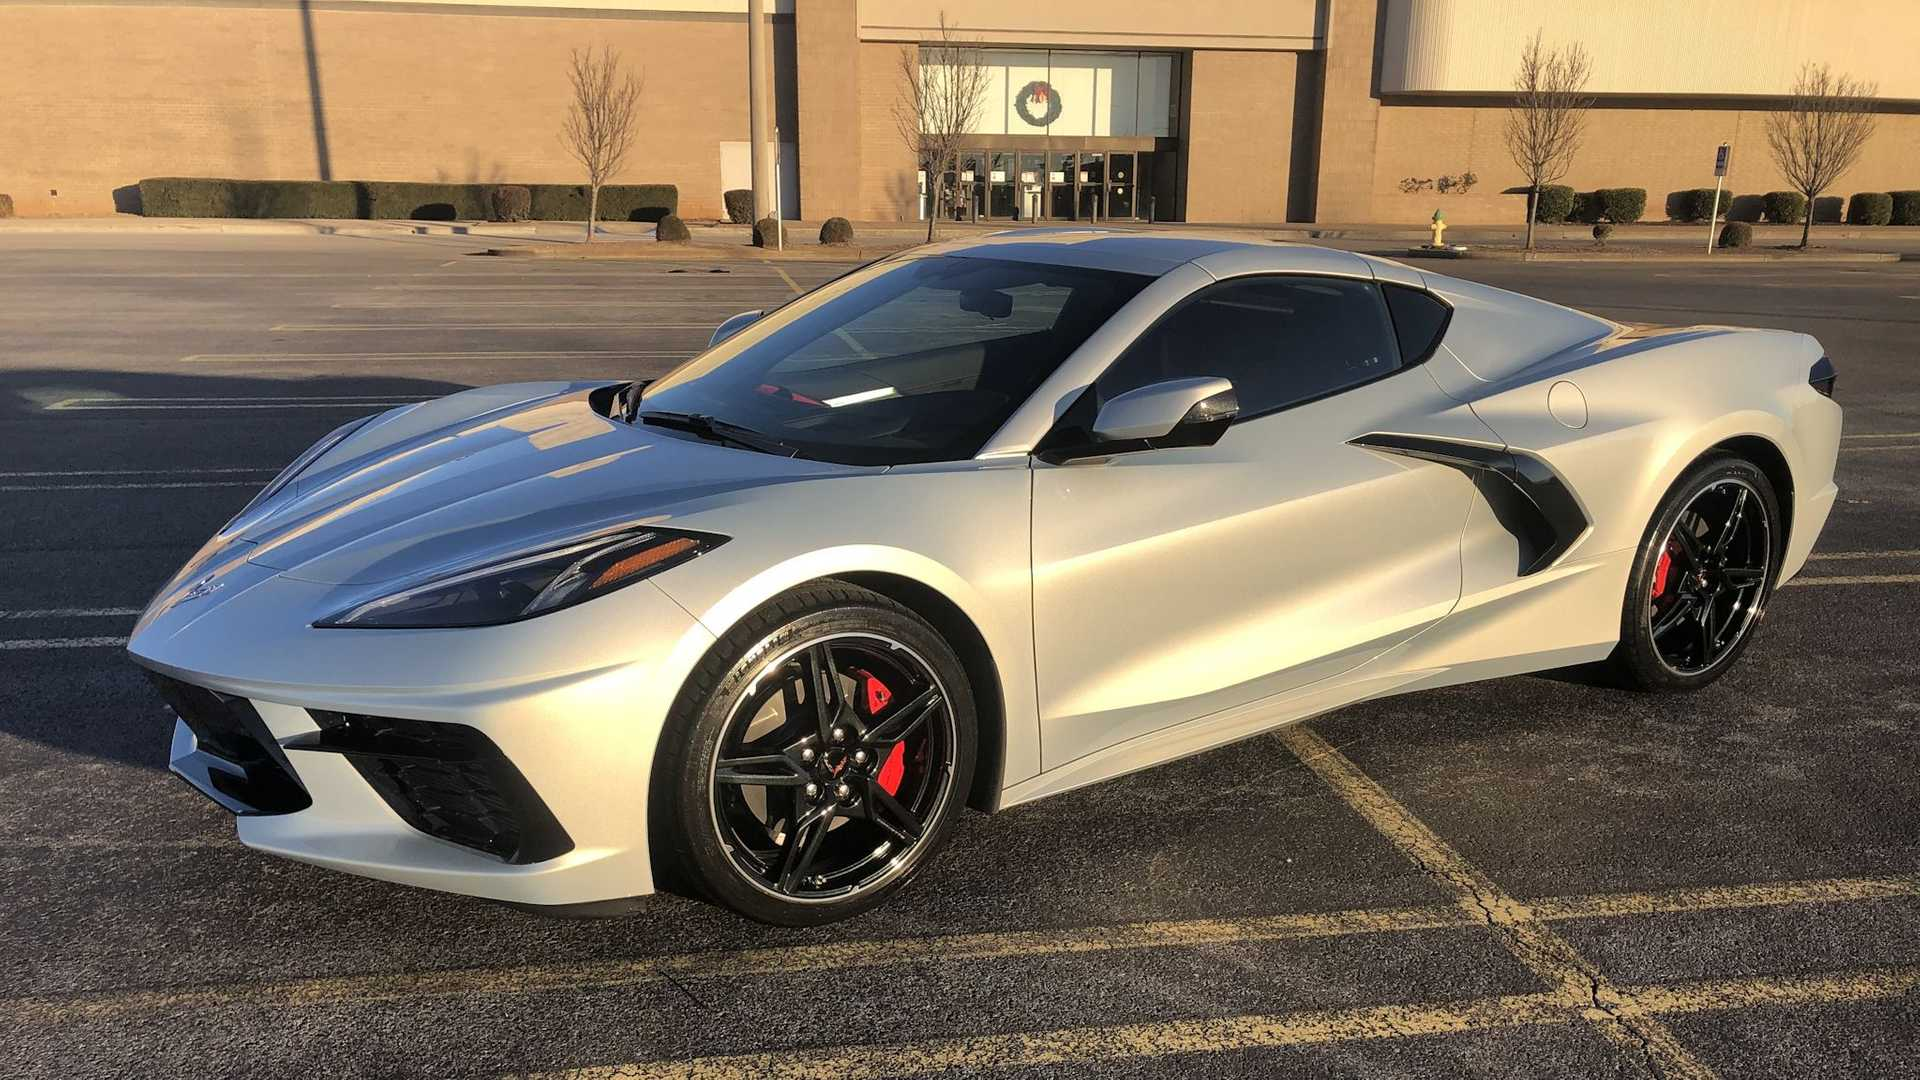 2021 Chevy Corvette With Silver Flare Metallic Paint